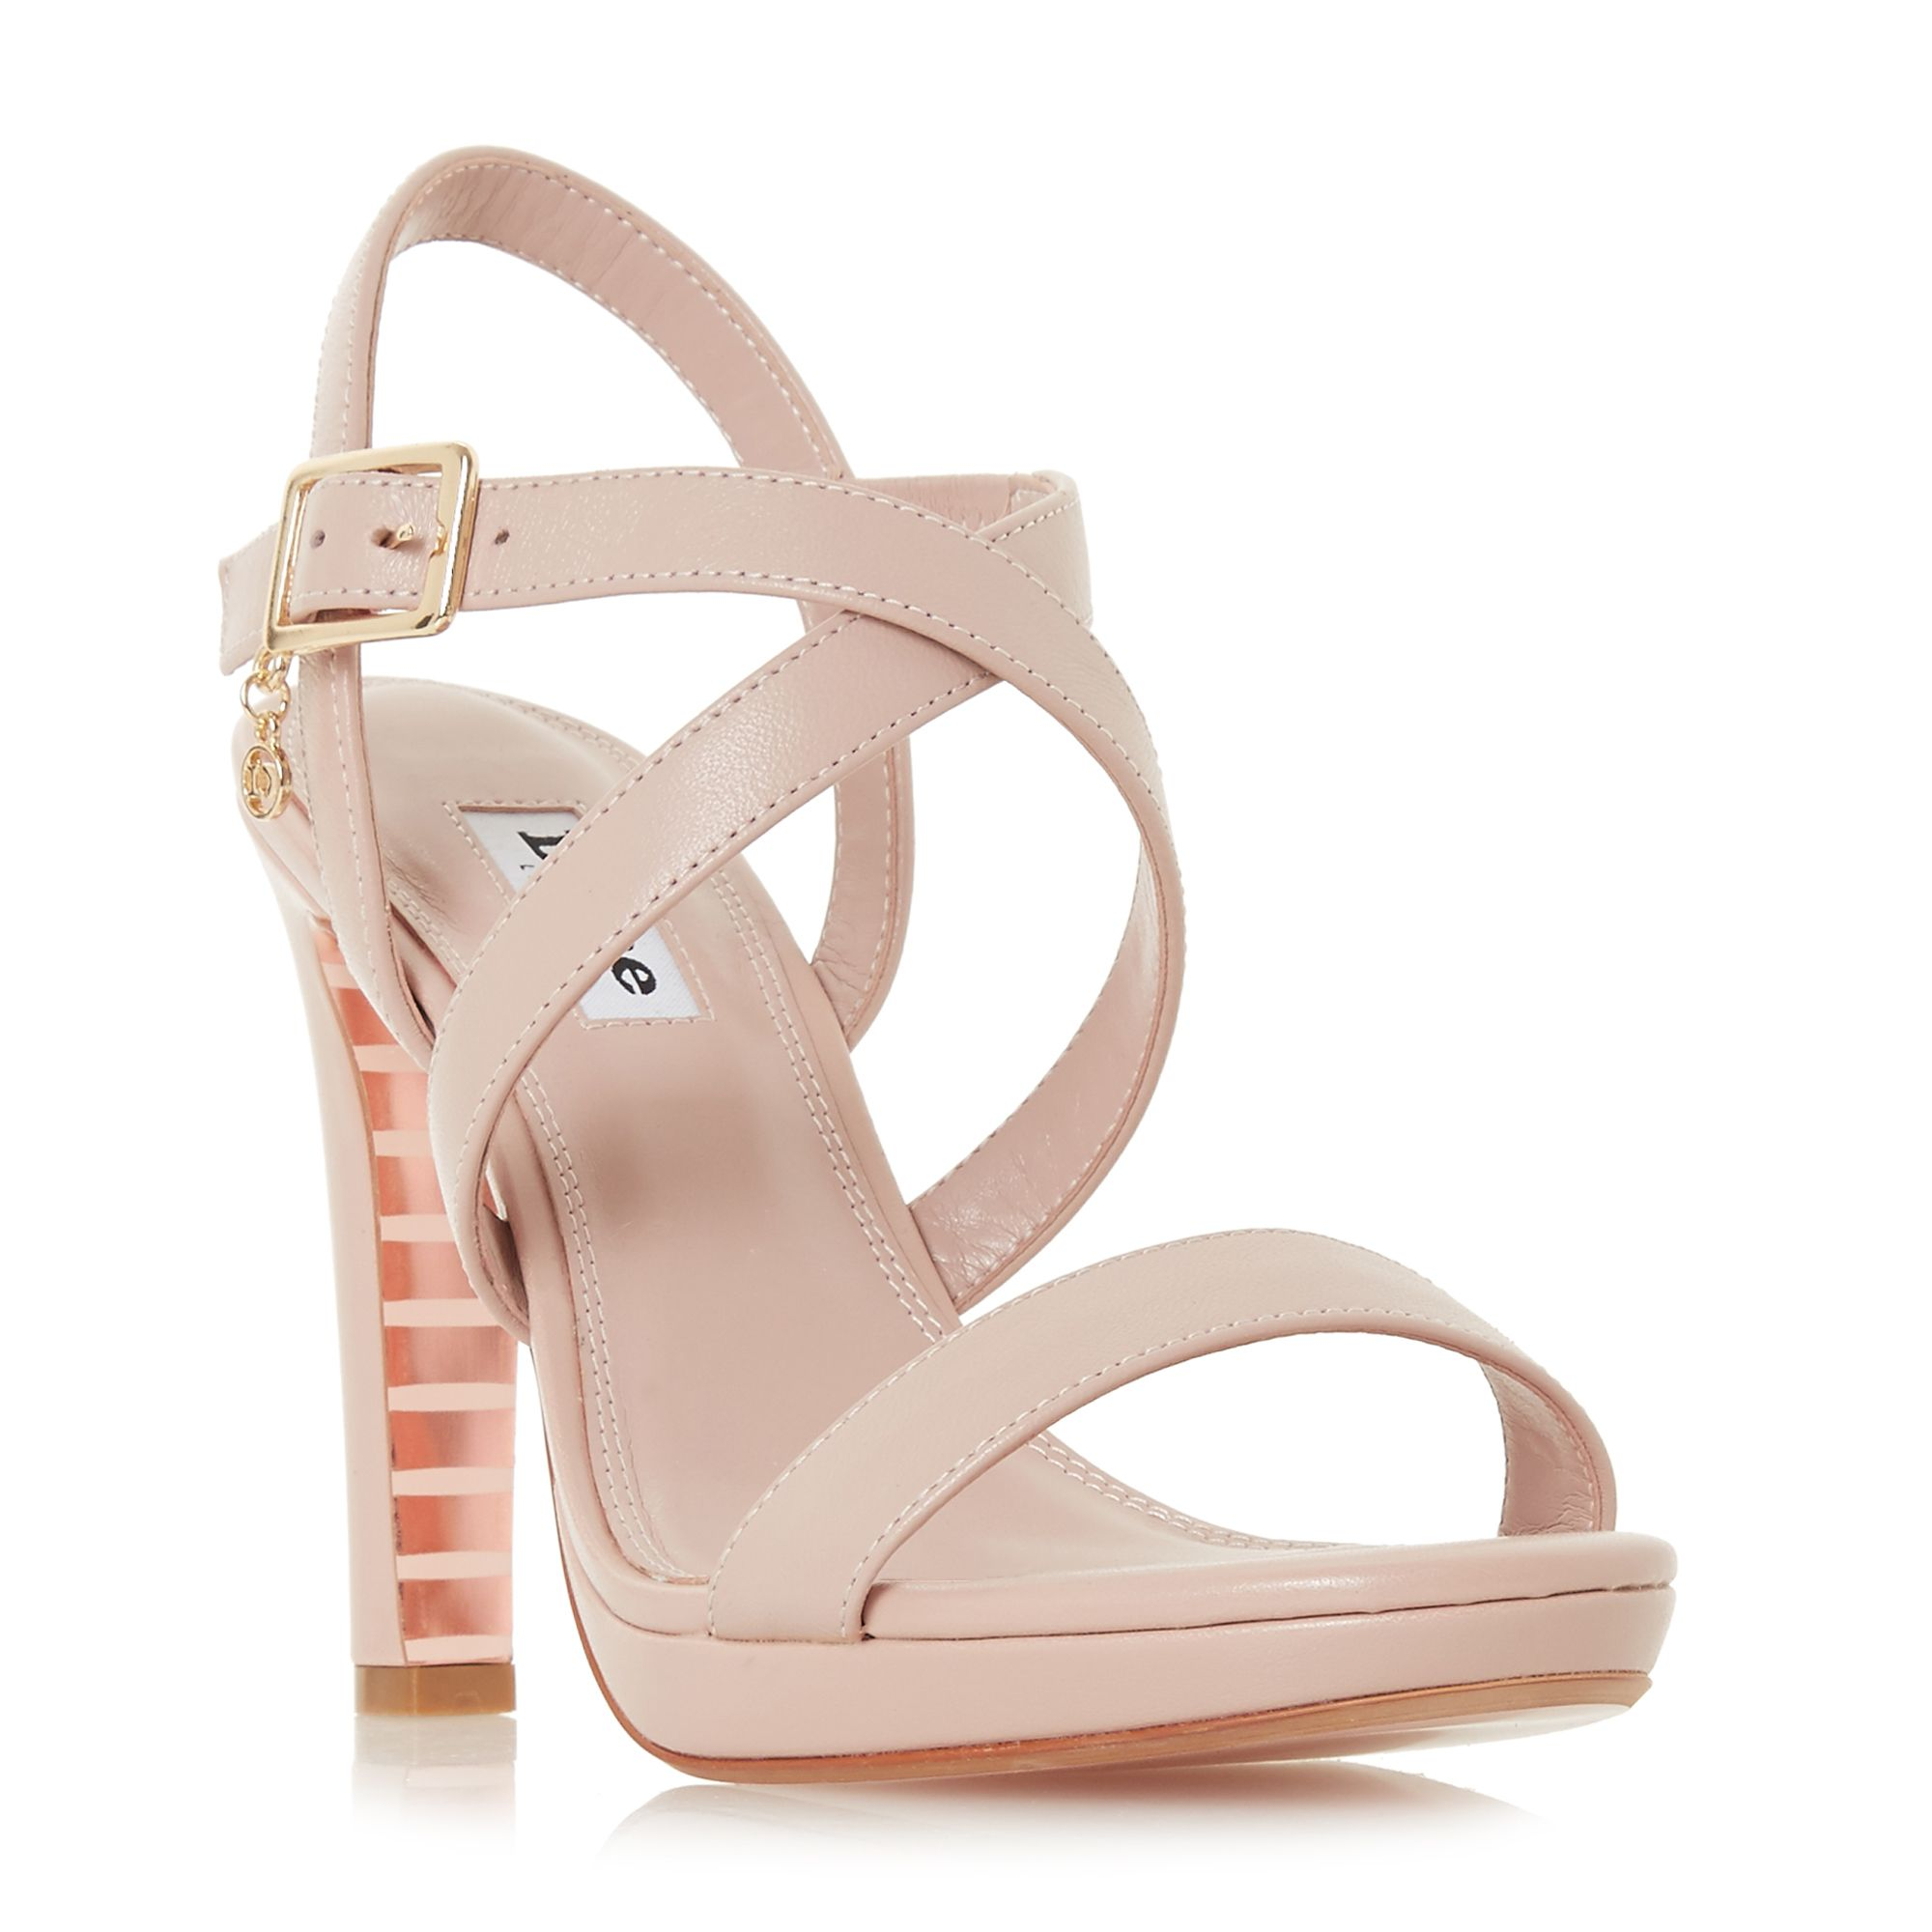 Dune Misstee Cross Strap Sandal Shoes ...